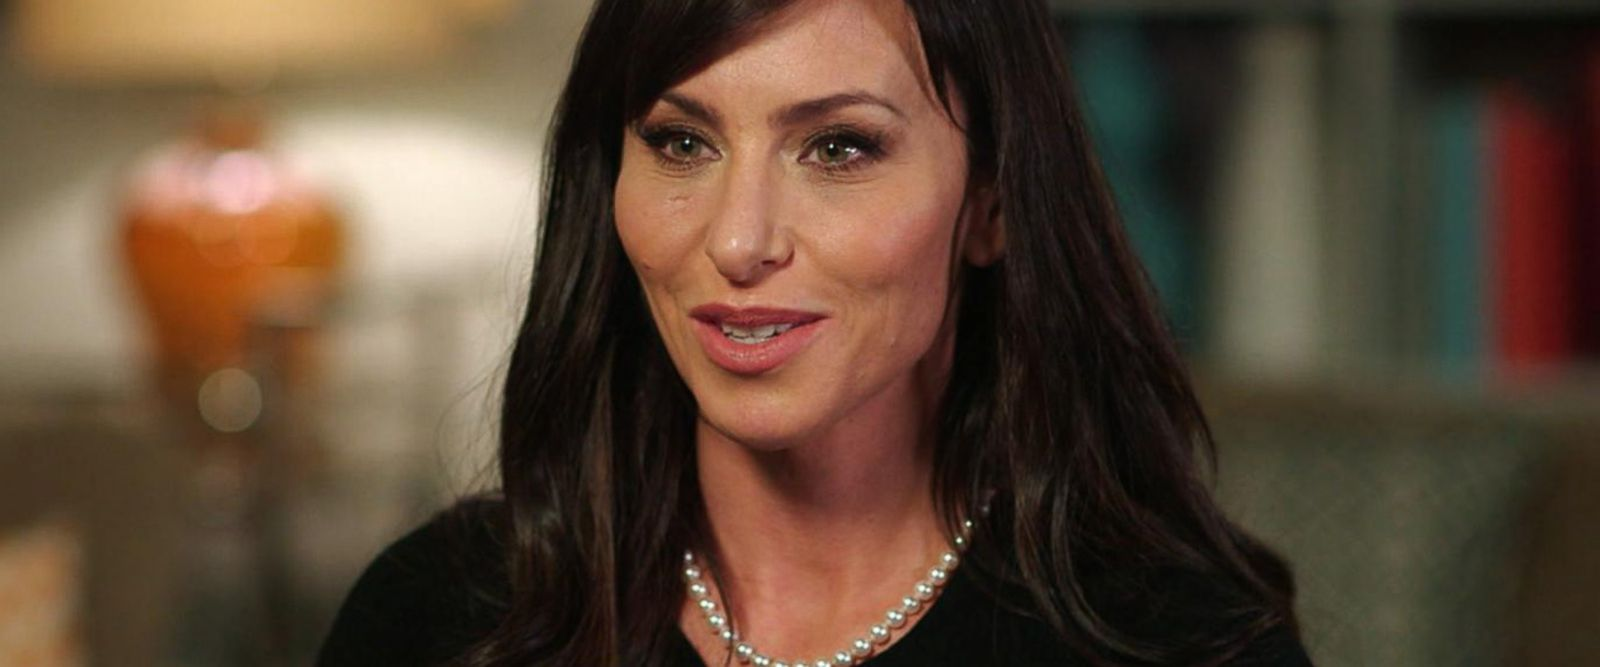 'VIDEO:  In 'Molly's Game,' how Olympic hopeful became high-stakes poker princess' from the web at 'http://a.abcnews.com/images/Nightline/180105_ntl_molly_bloom_1255_12x5_1600.jpg'